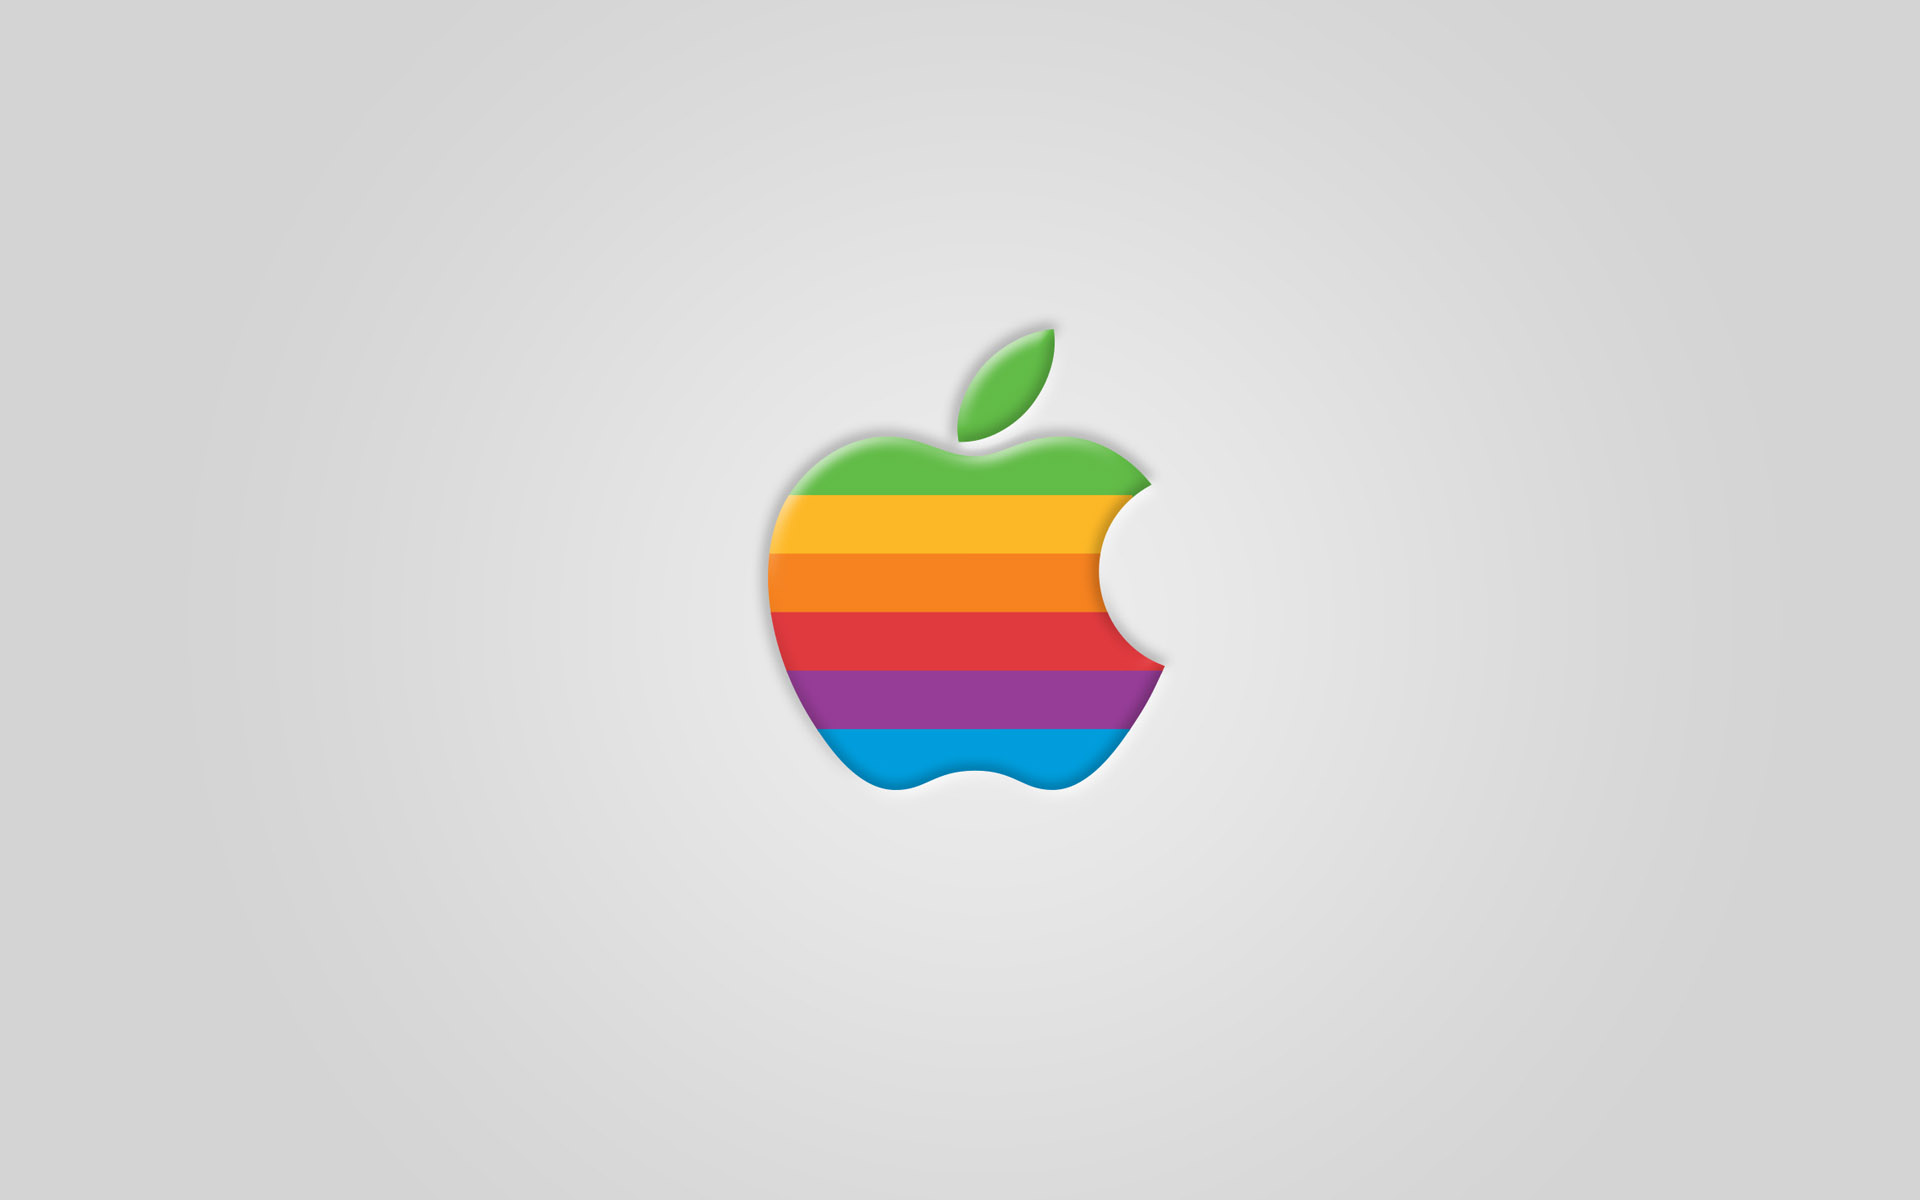 HD Apple wallpaper 18190